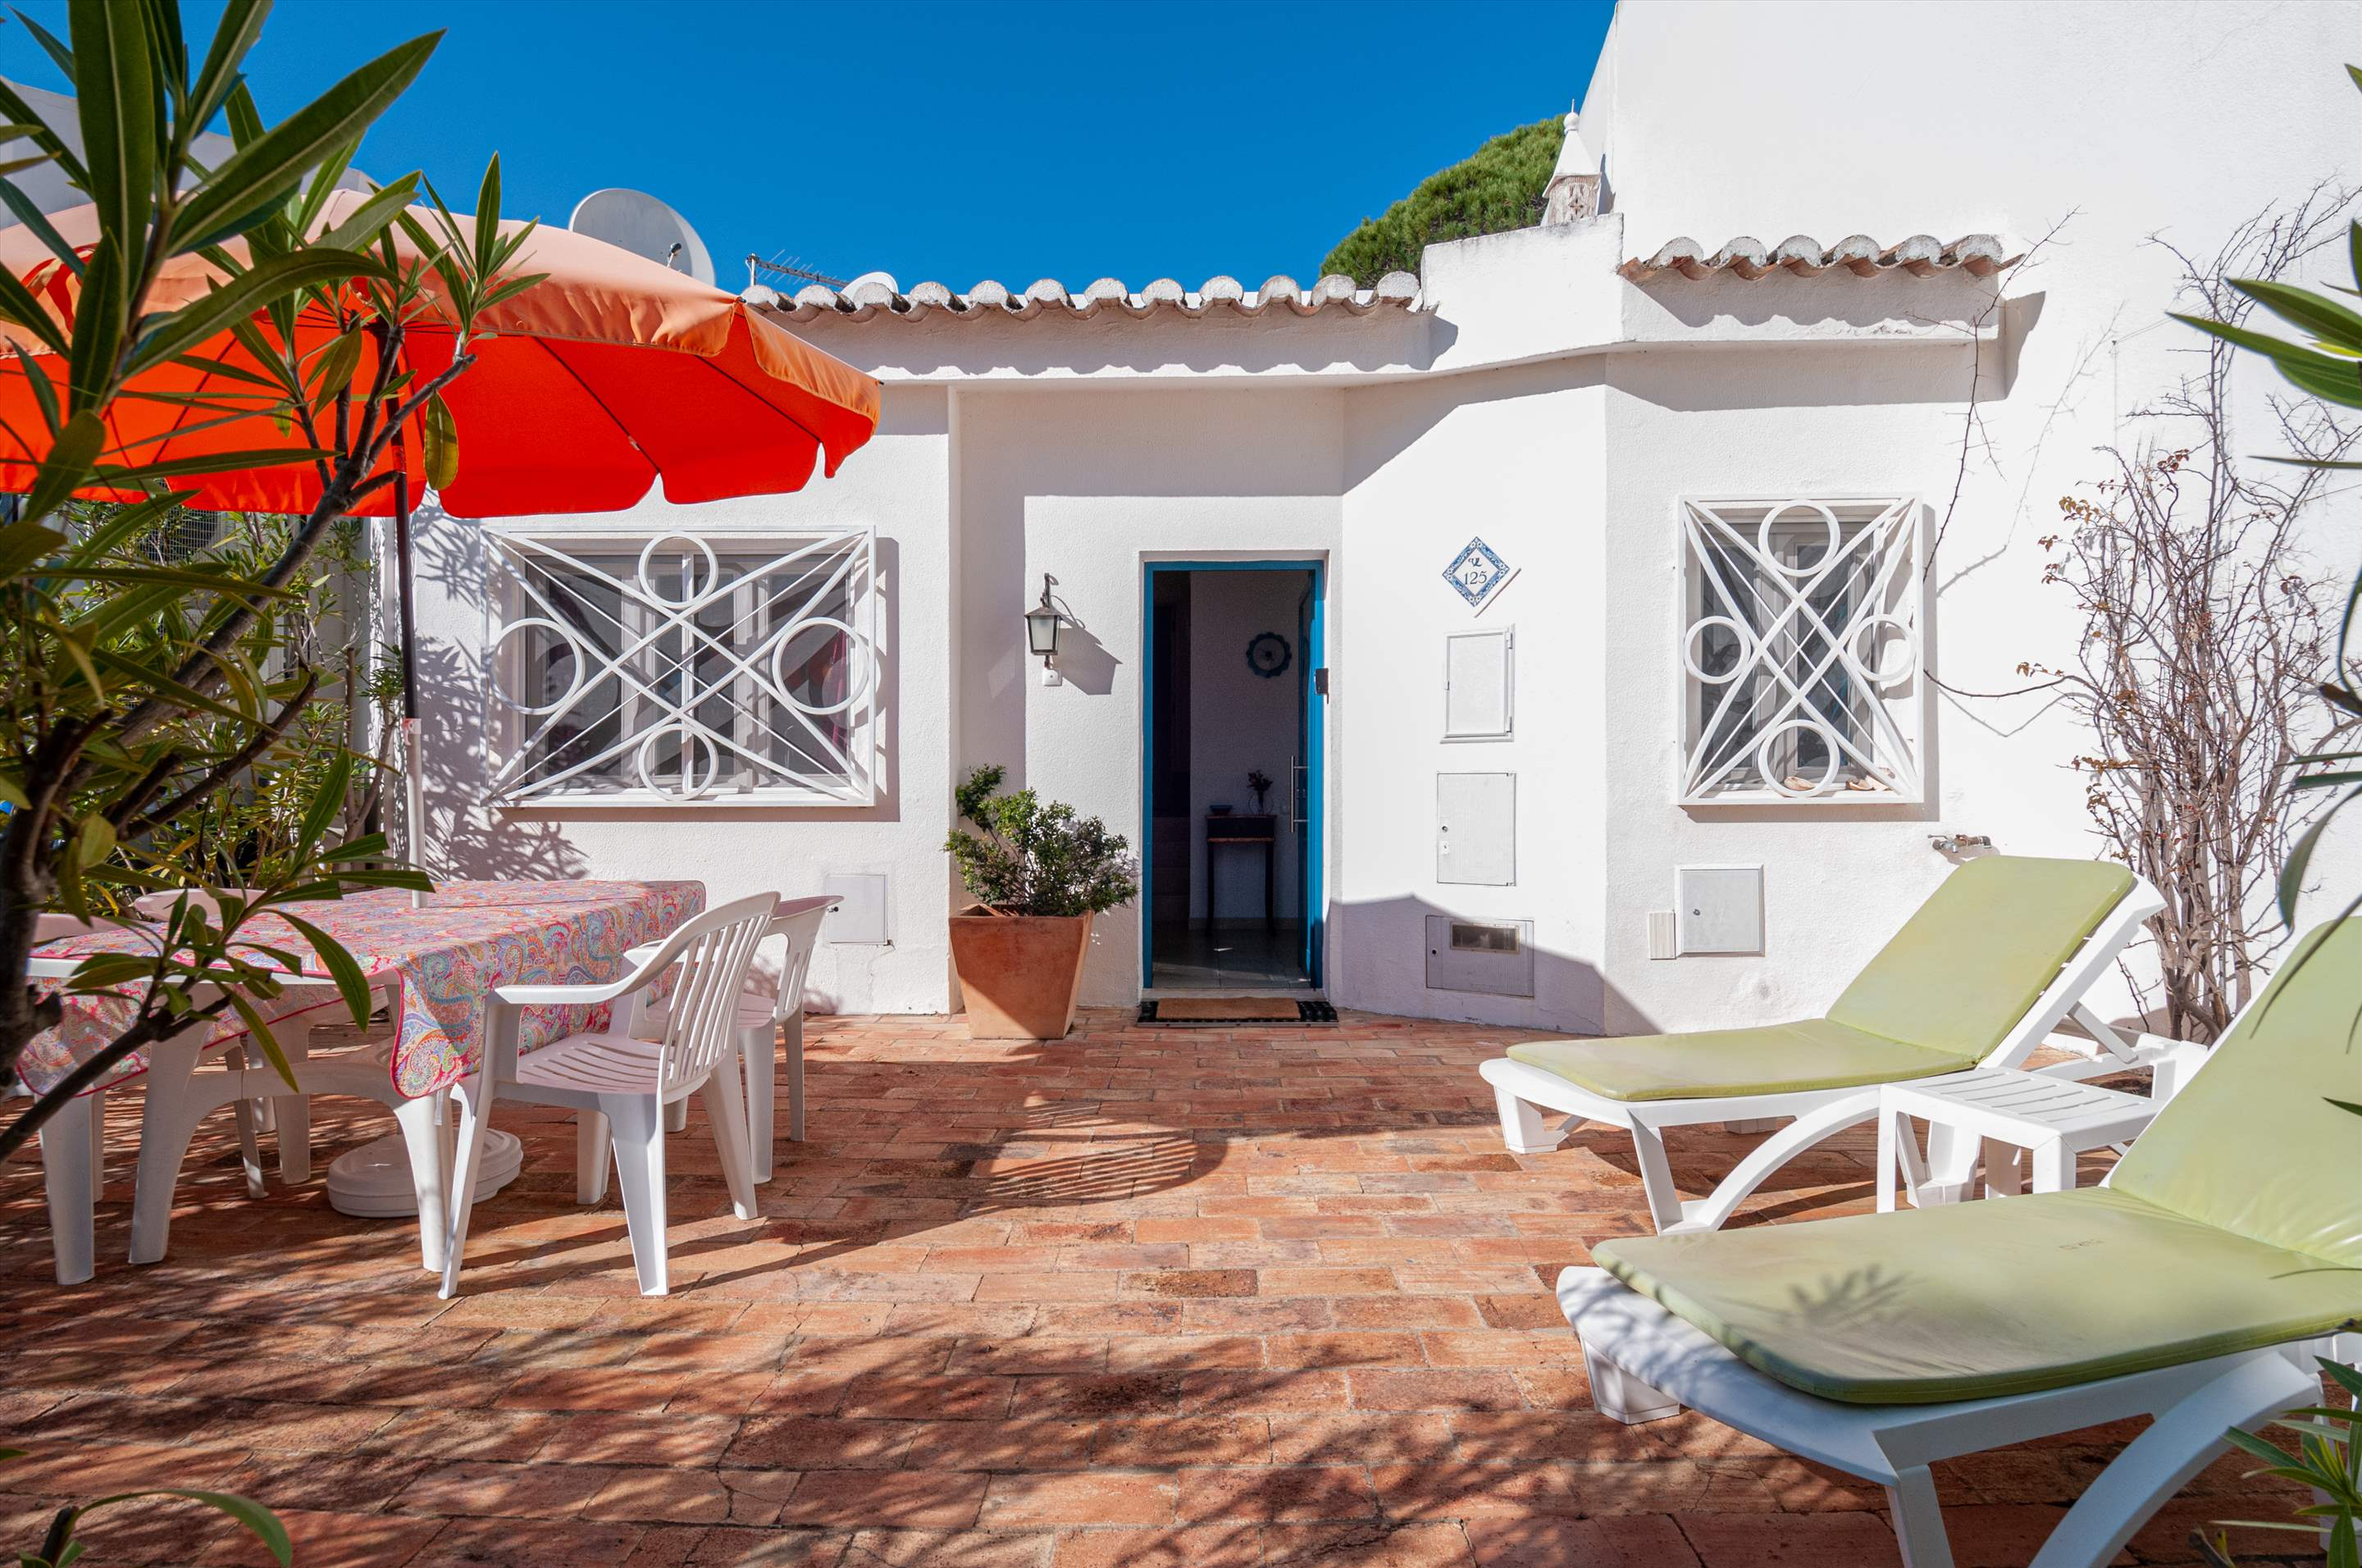 Villa Townhouse 2 Bedroom, 2 bedroom villa in Vale do Lobo, Algarve